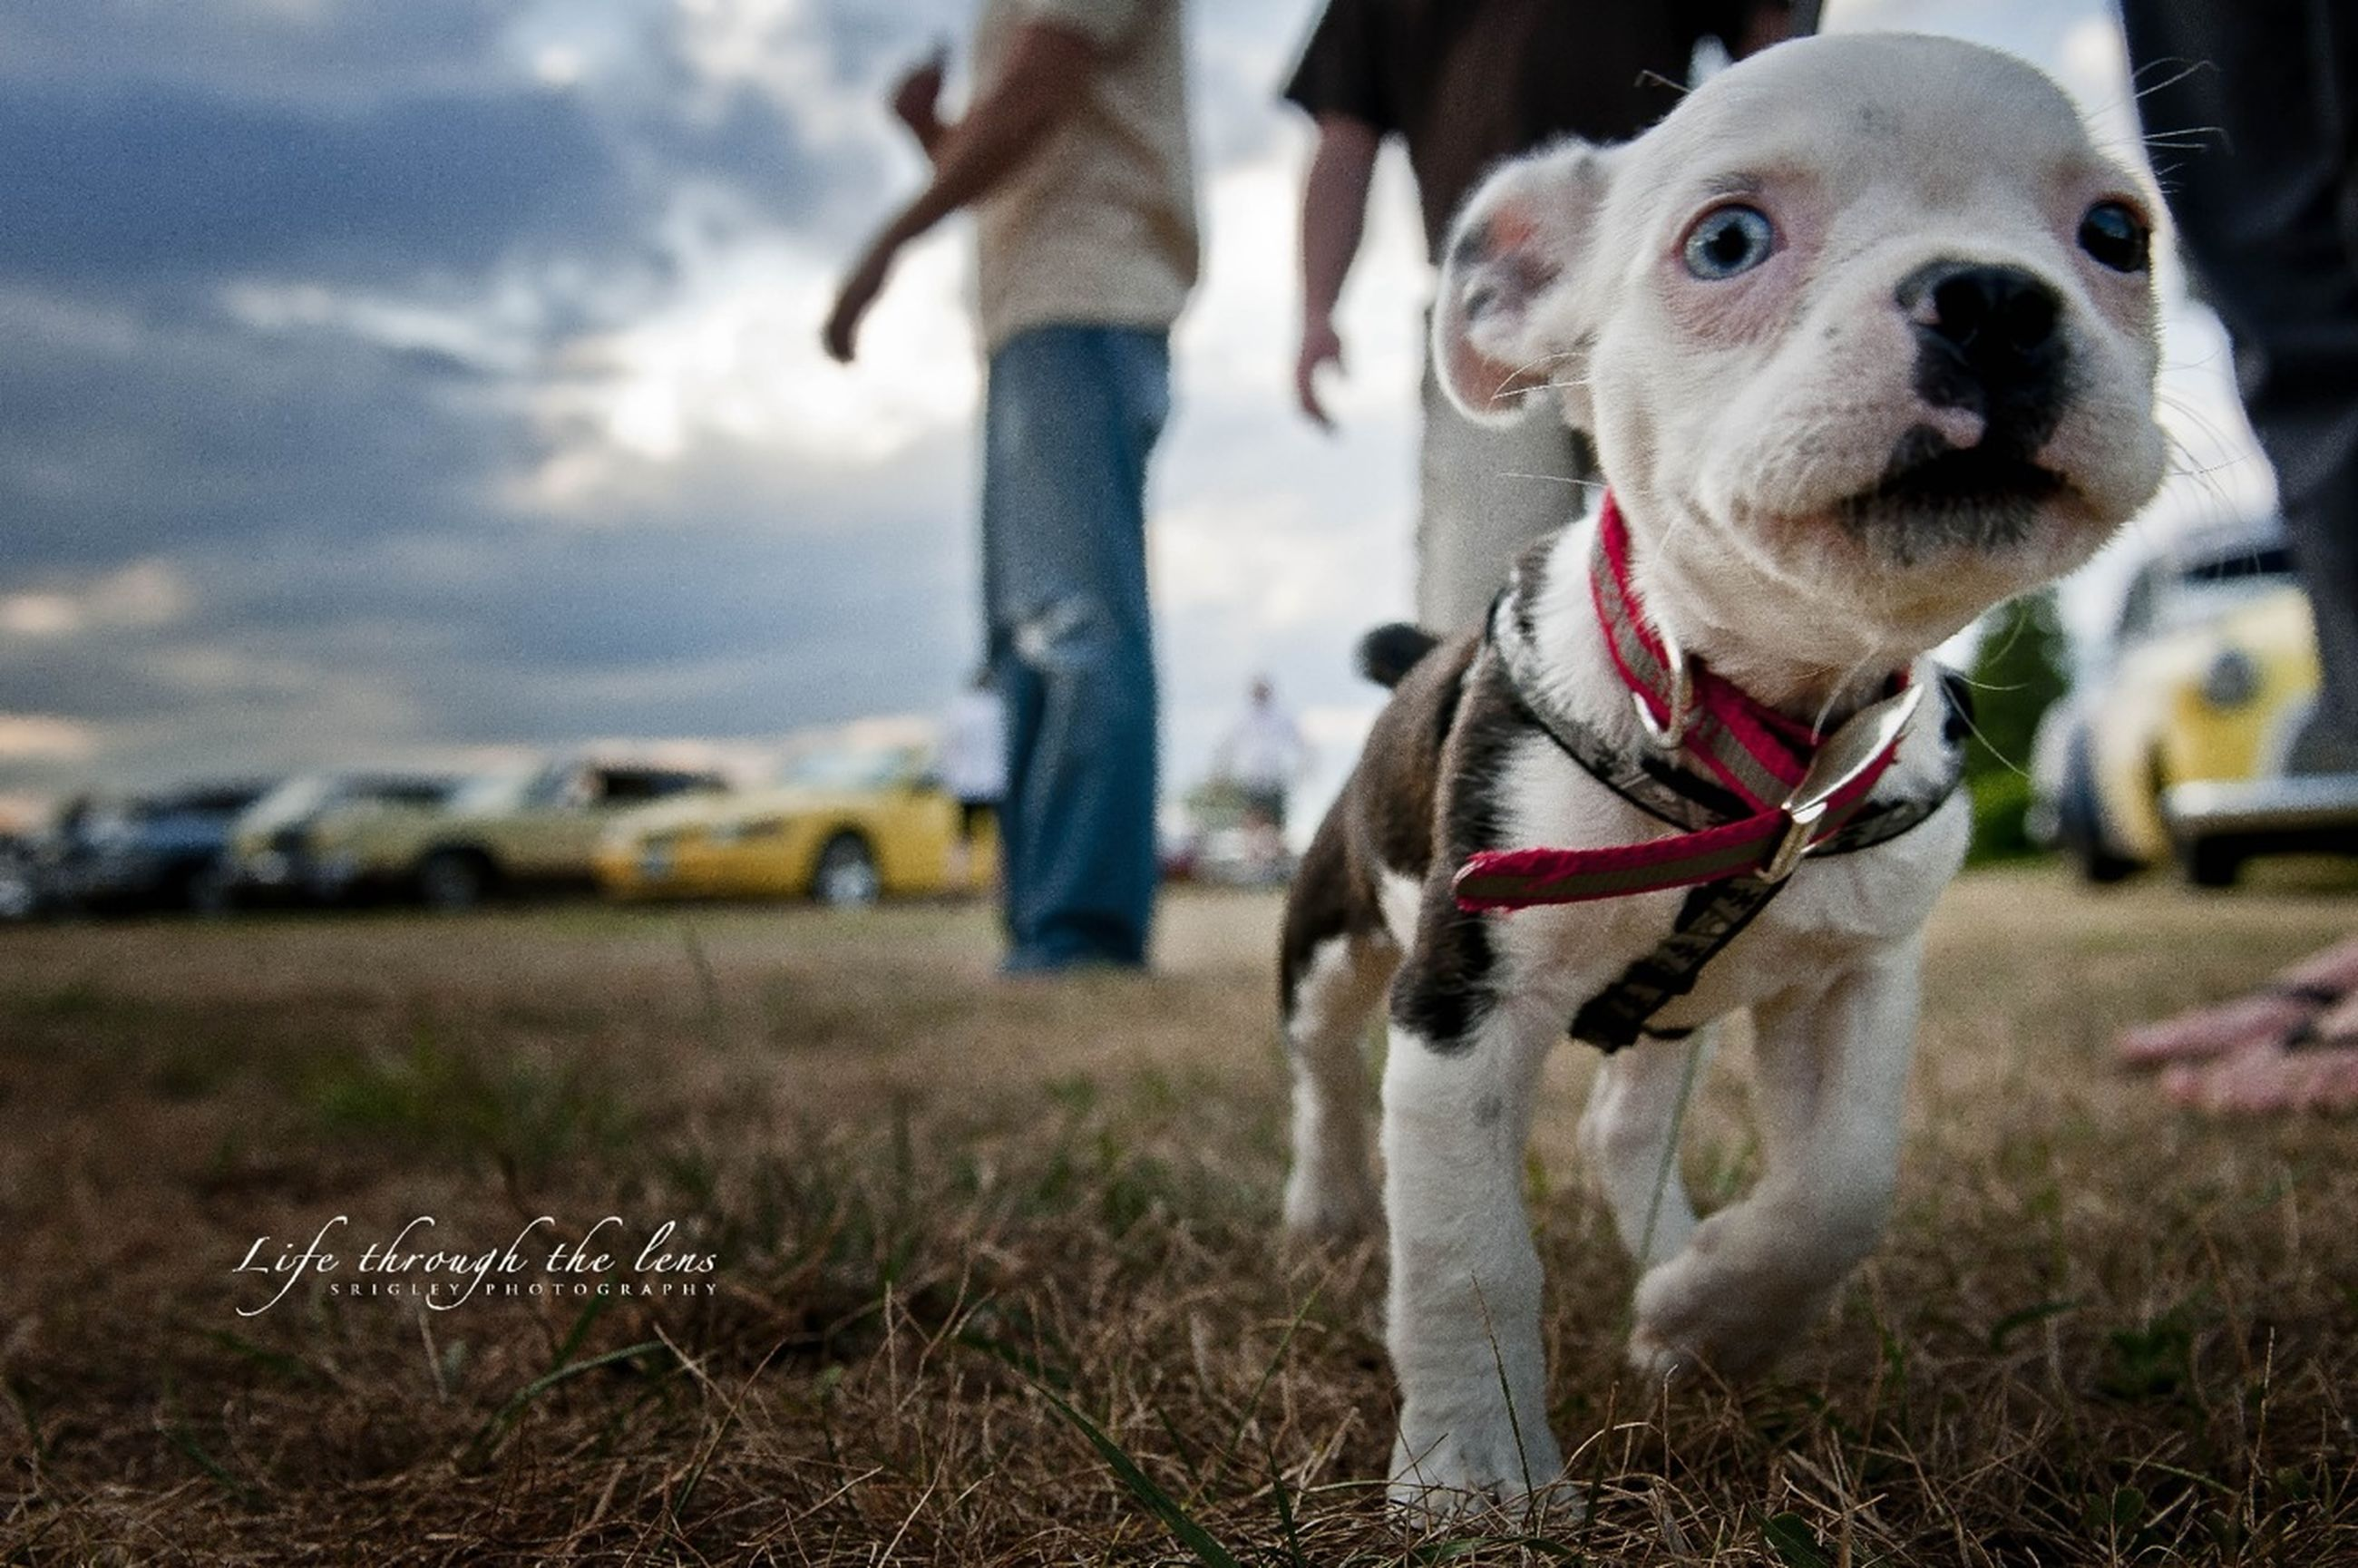 dog, domestic animals, pets, animal themes, mammal, focus on foreground, field, one animal, lifestyles, grass, leisure activity, incidental people, playing, day, outdoors, standing, sunlight, playful